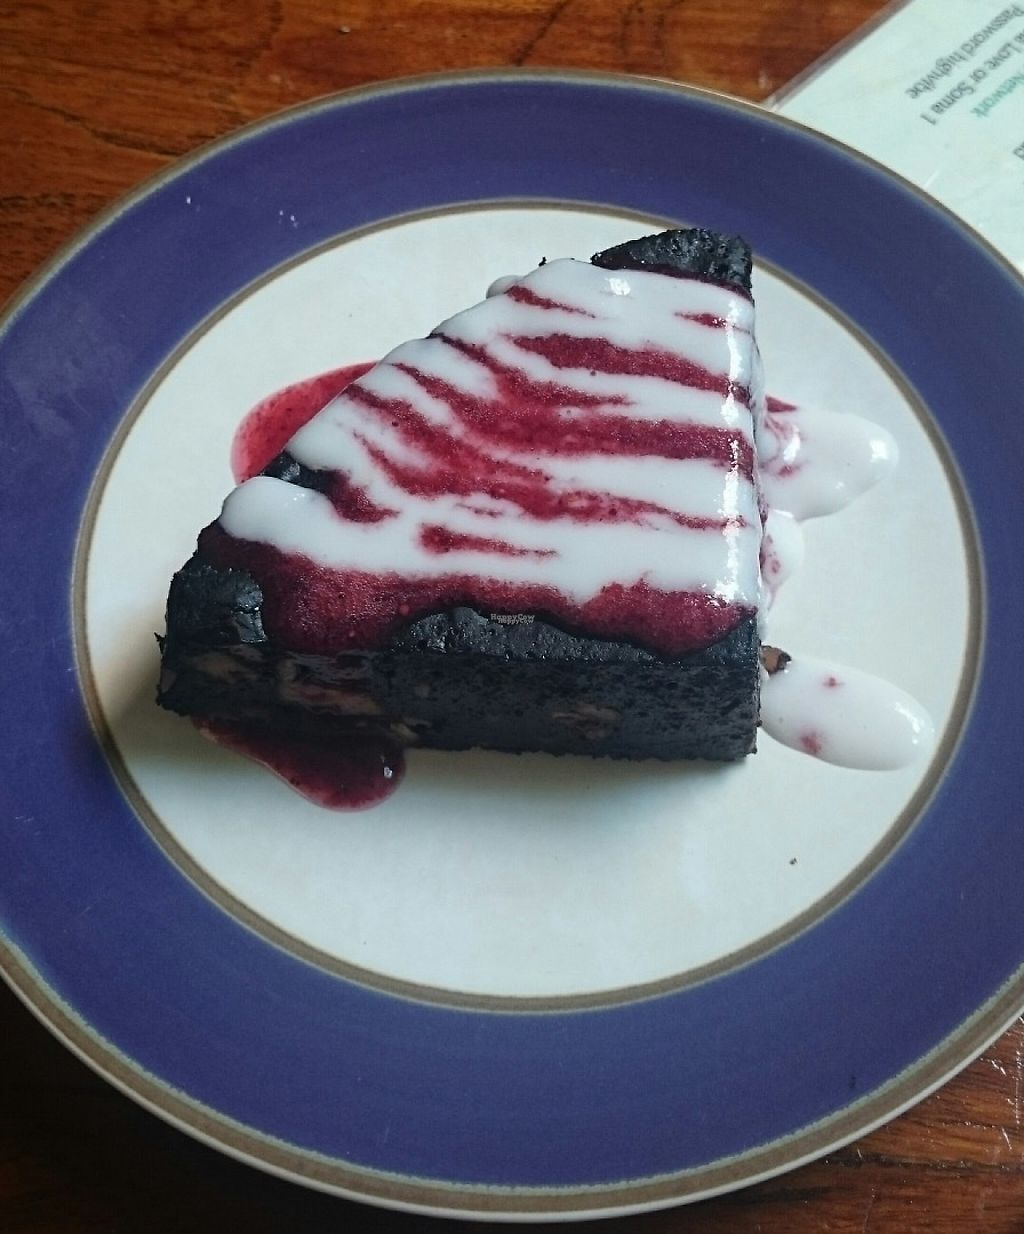 """Photo of Soma Cafe  by <a href=""""/members/profile/Cynthia1998"""">Cynthia1998</a> <br/>Vegan brownie with raspberry sauce and coconut cream <br/> January 31, 2017  - <a href='/contact/abuse/image/24983/220194'>Report</a>"""